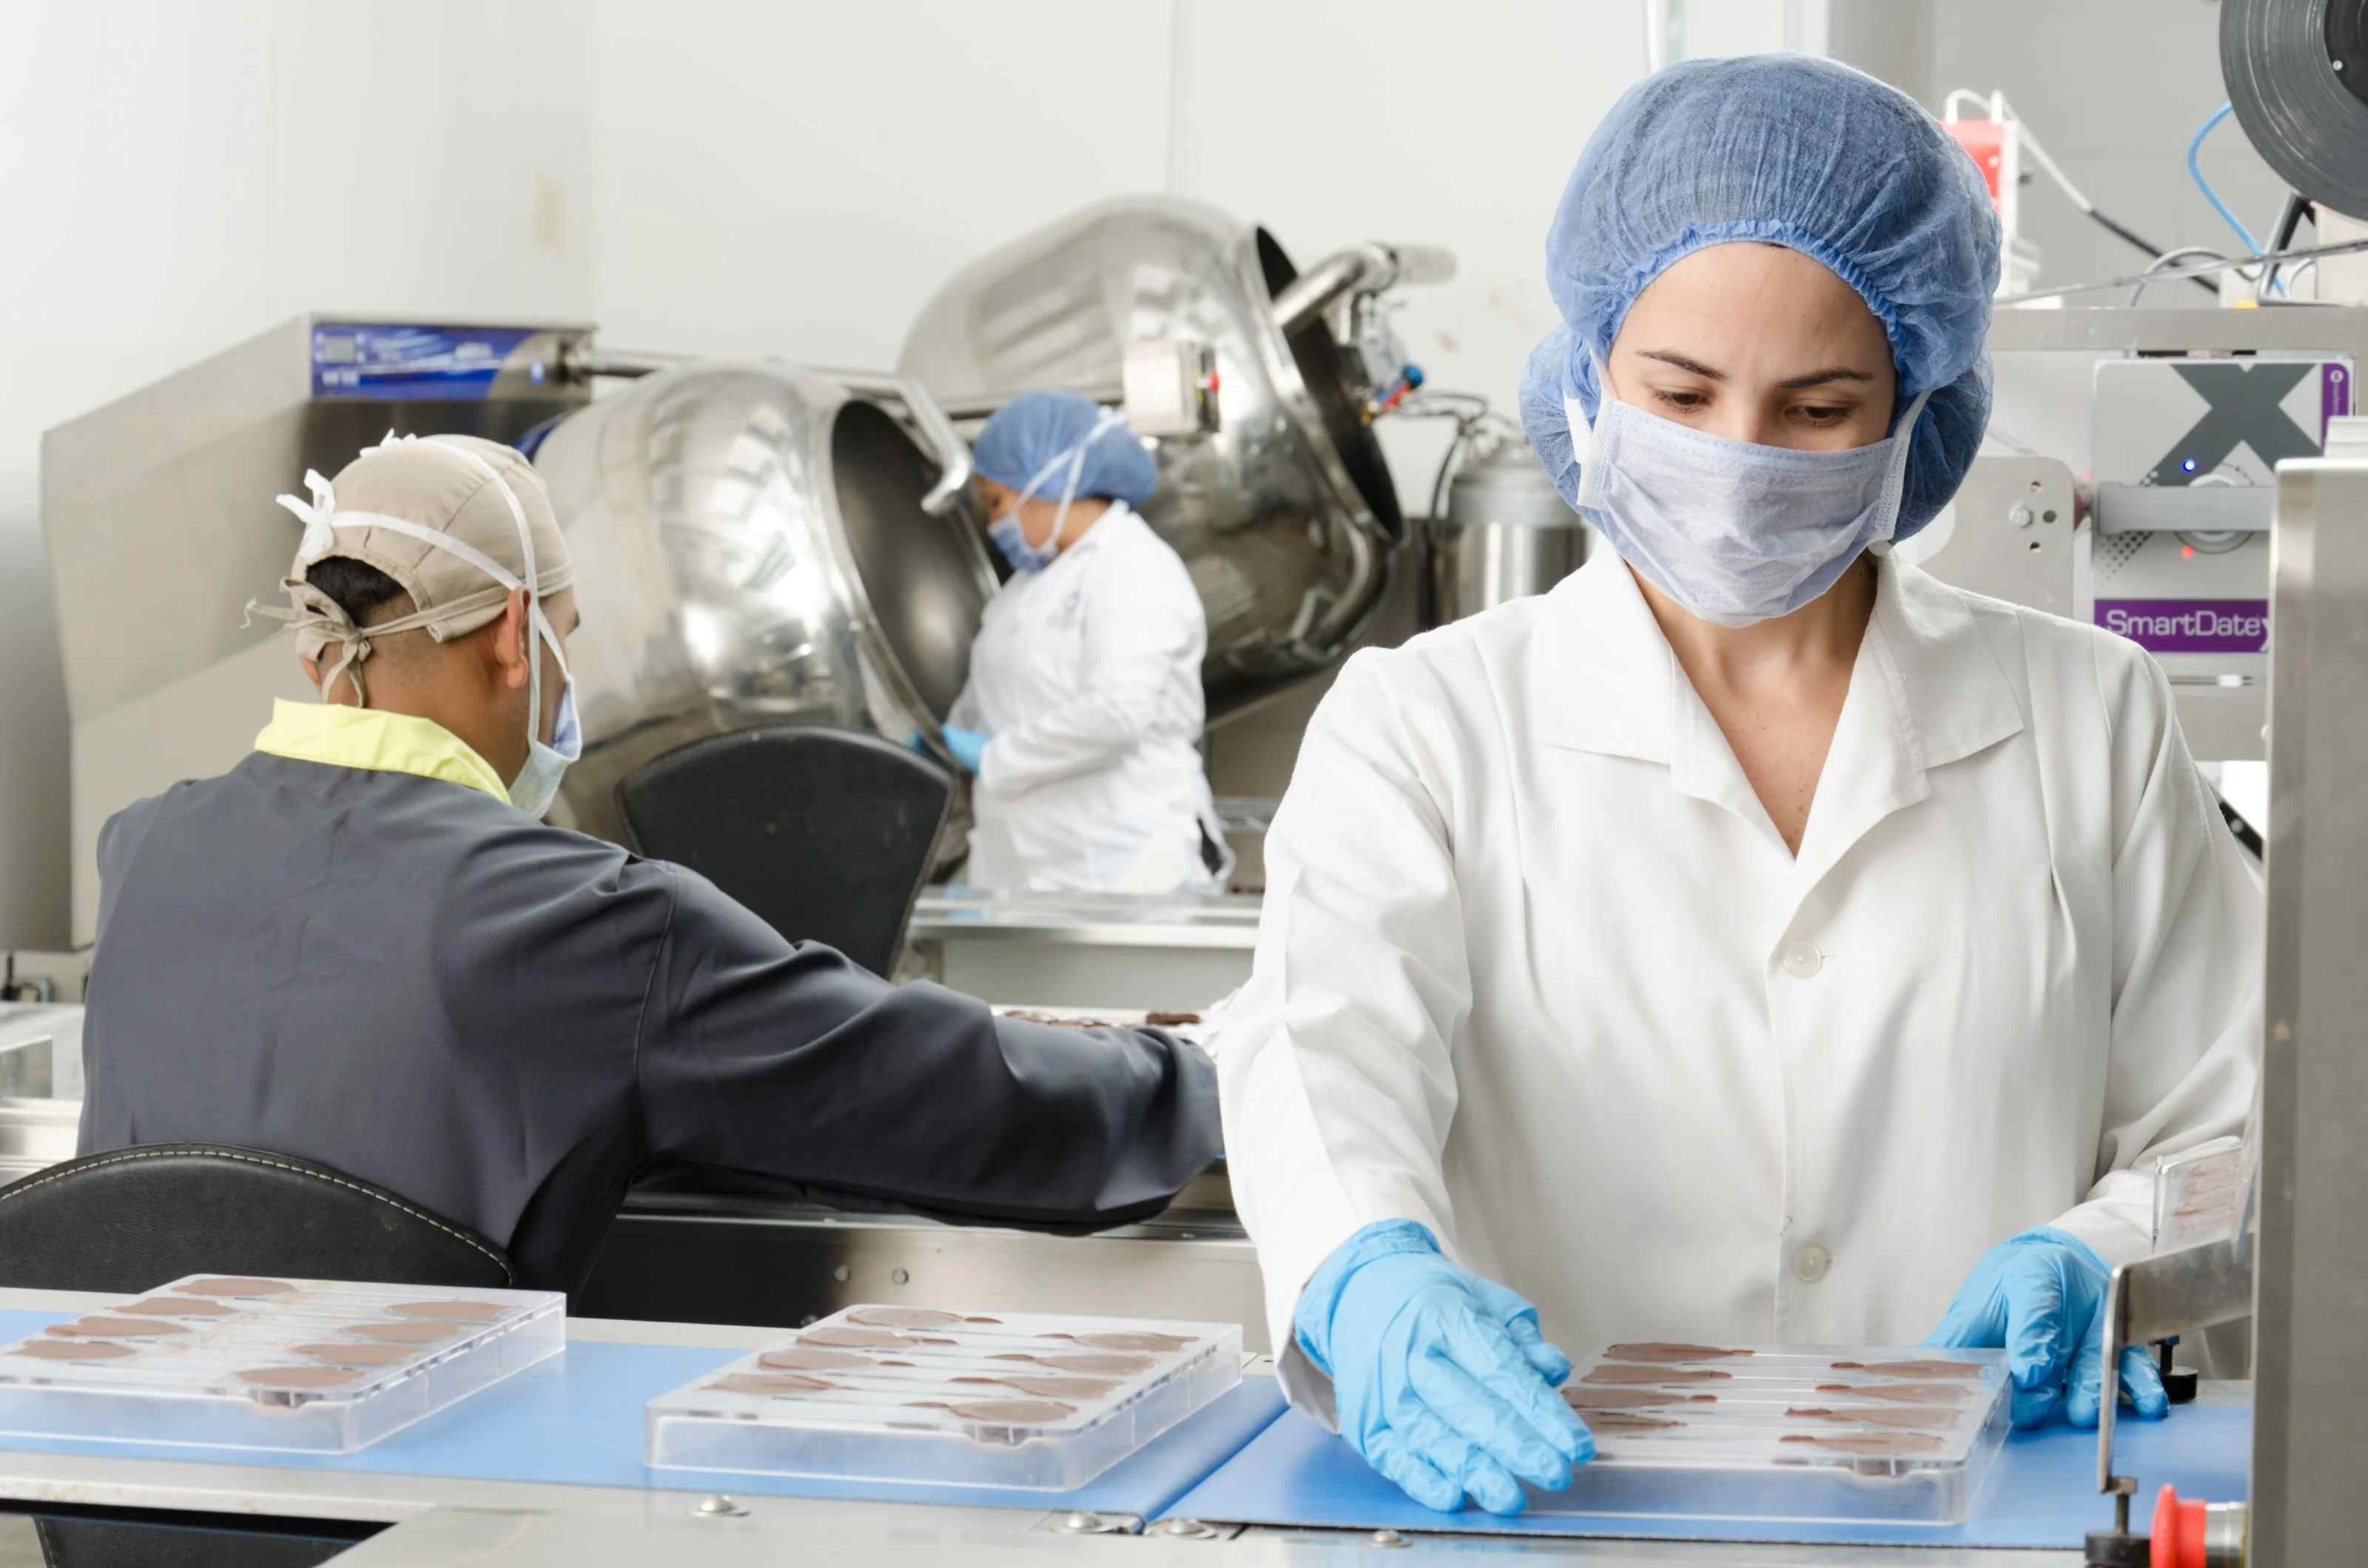 Healthcare workers working in a lab.